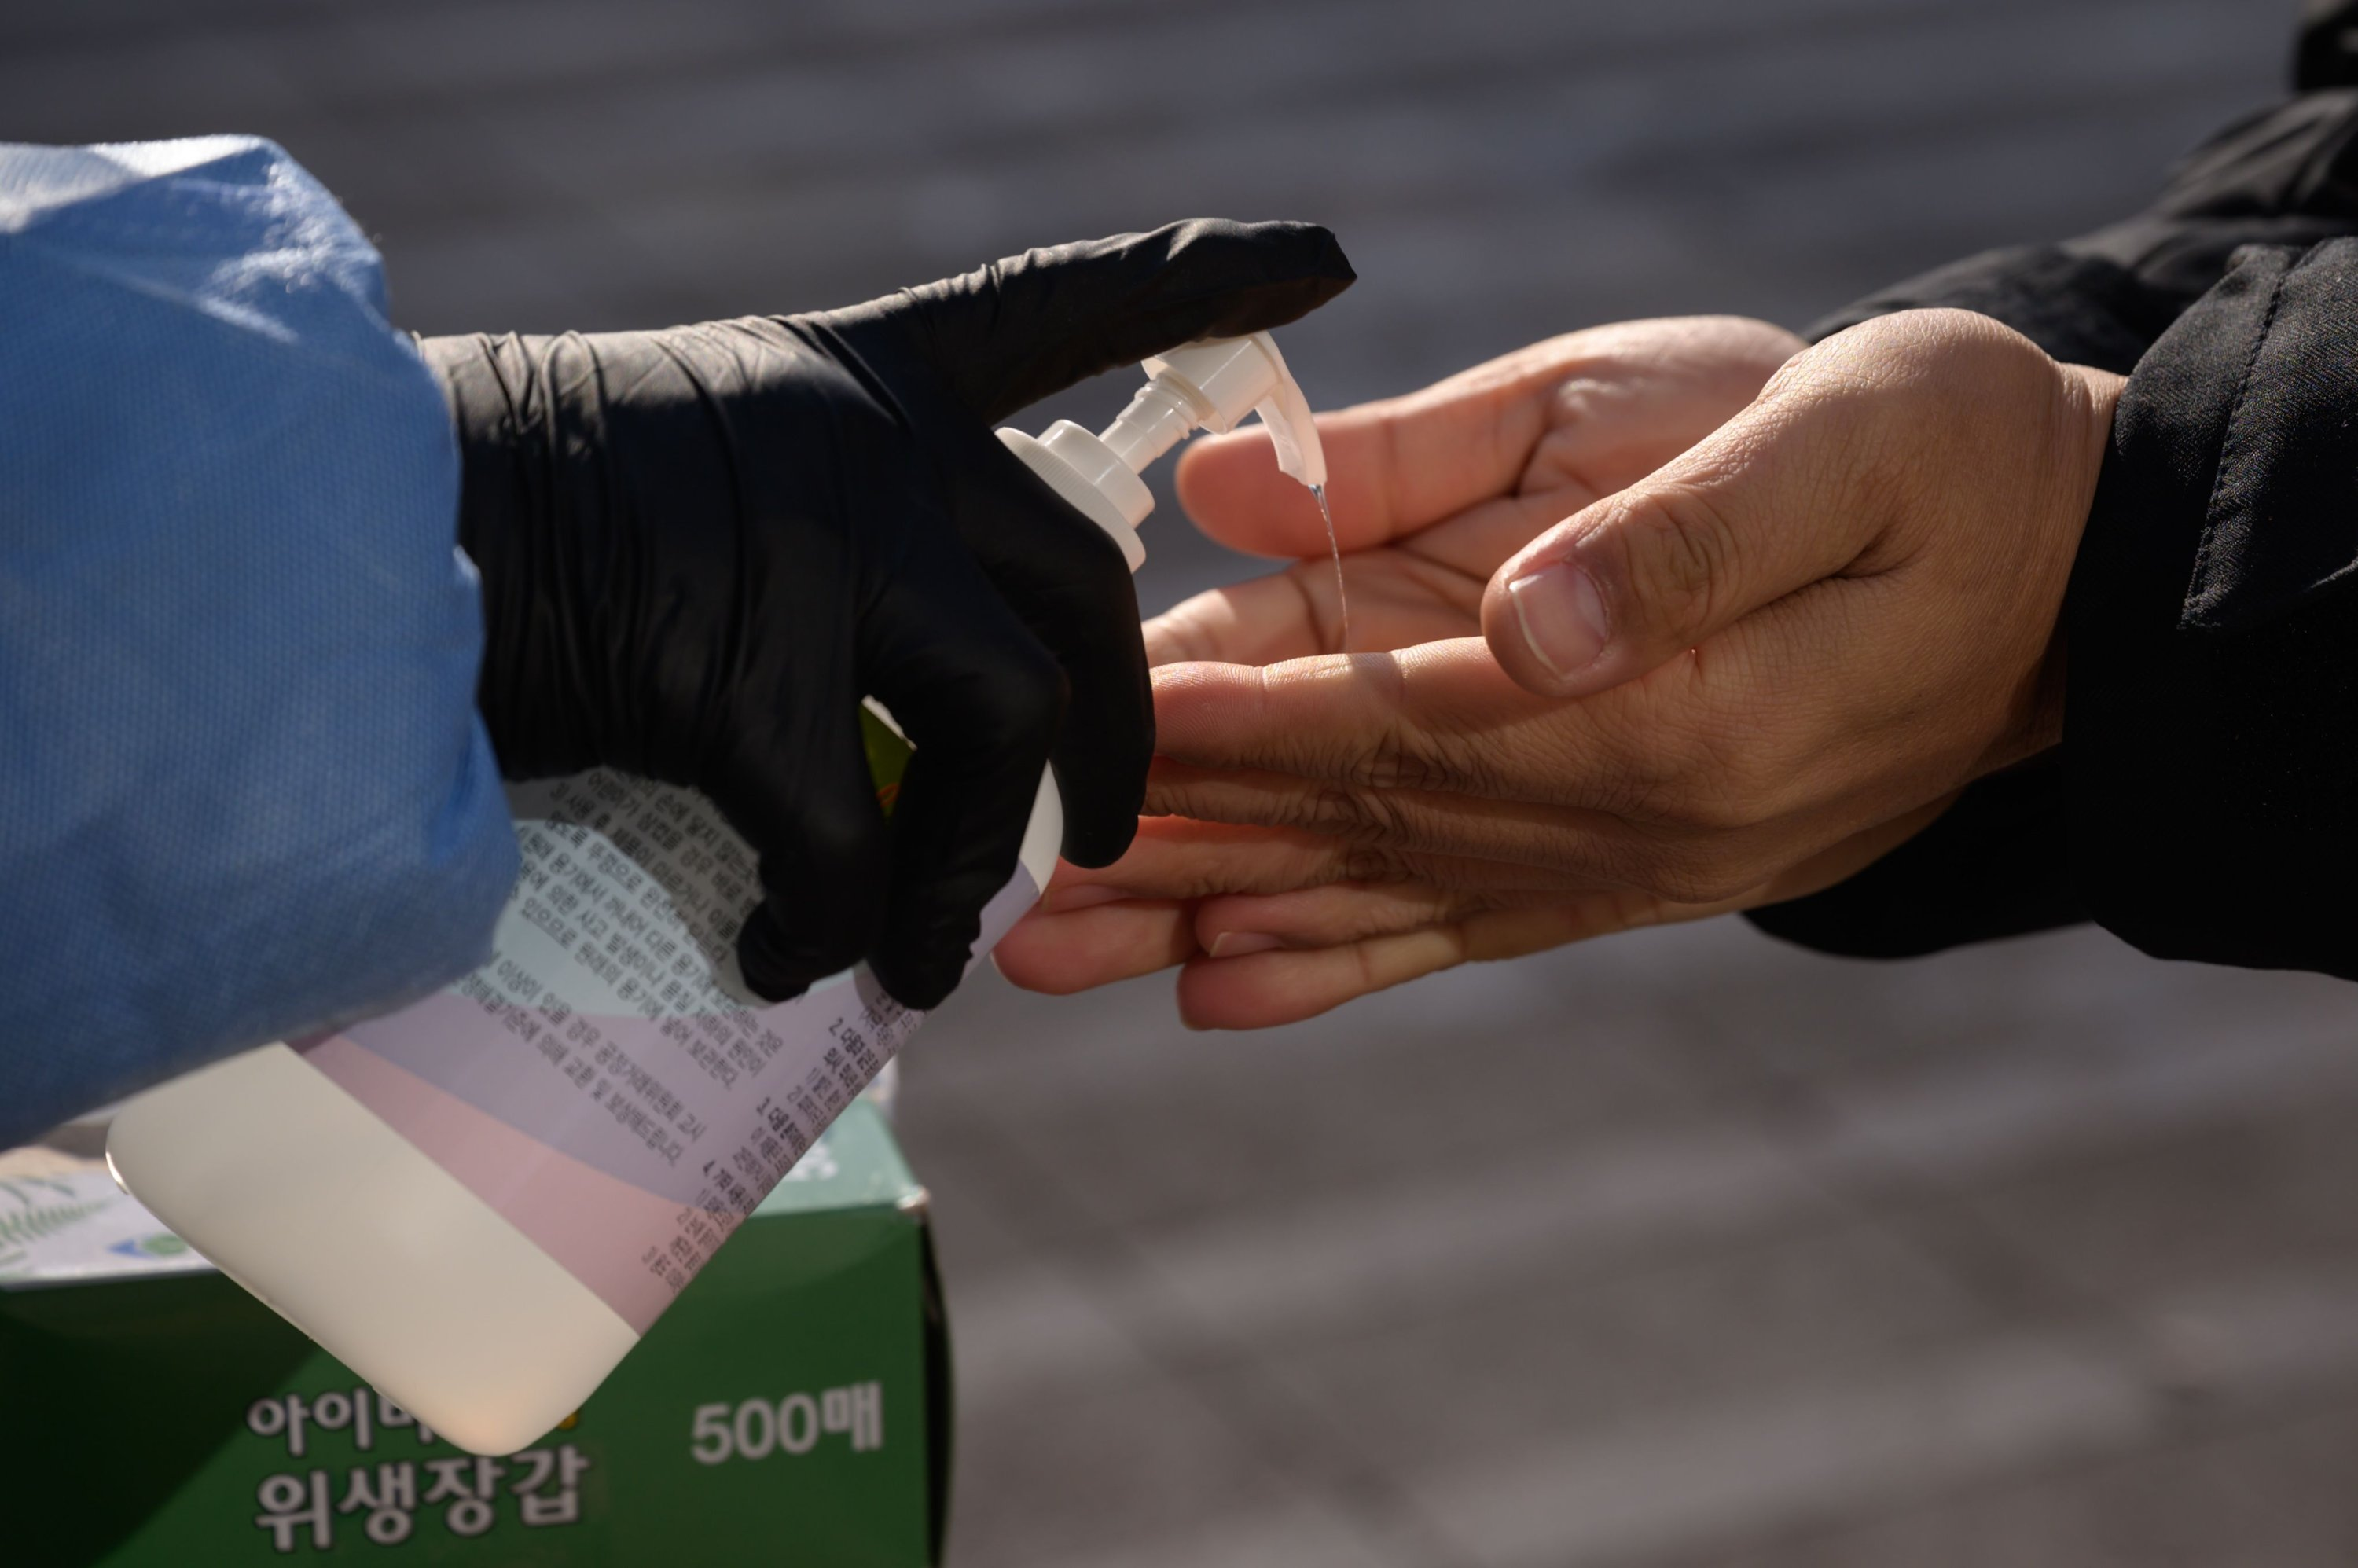 A health worker distributes hand sanitizer prior to people taking a test for the novel coronavirus at a temporary testing center at city hall plaza in Seoul on Dec. 18, 2020. (AFP PHOTO)